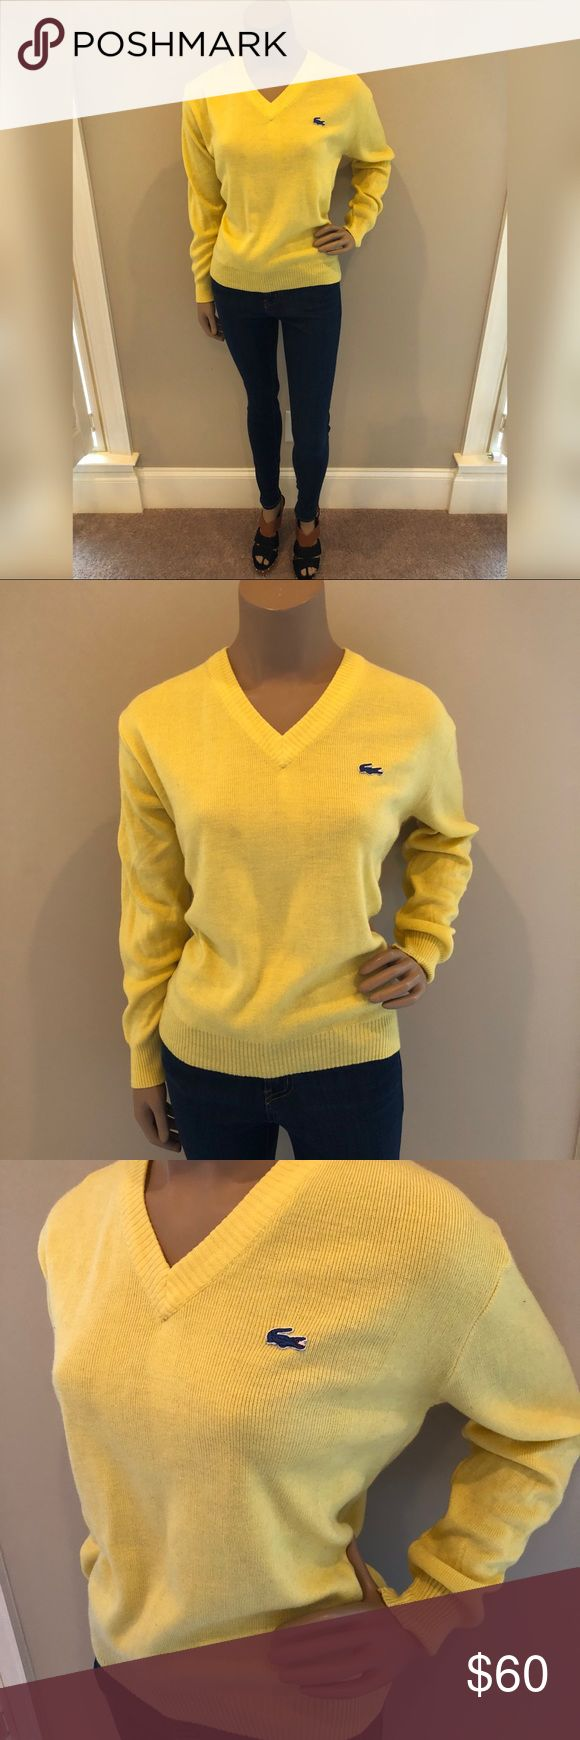 VINTAGE Yellow LACOSTE sweater - Hong Kong 🇭🇰 This is a VINTAGE (50s/60s) V Neck Yellow Sweater by Lacoste. Blue alligator  Fits a women's size small- medium Made in British Crown Colony of Hong Kong. These garment labels are typically from the late 1950s and early 1960s!!  100% Acrylic  Condition: **The sweater has light wear throughout but looks great overall. However there is a small flaw/ hole on the side under arm (pictured)!!!** Lacoste Sweaters V-Necks